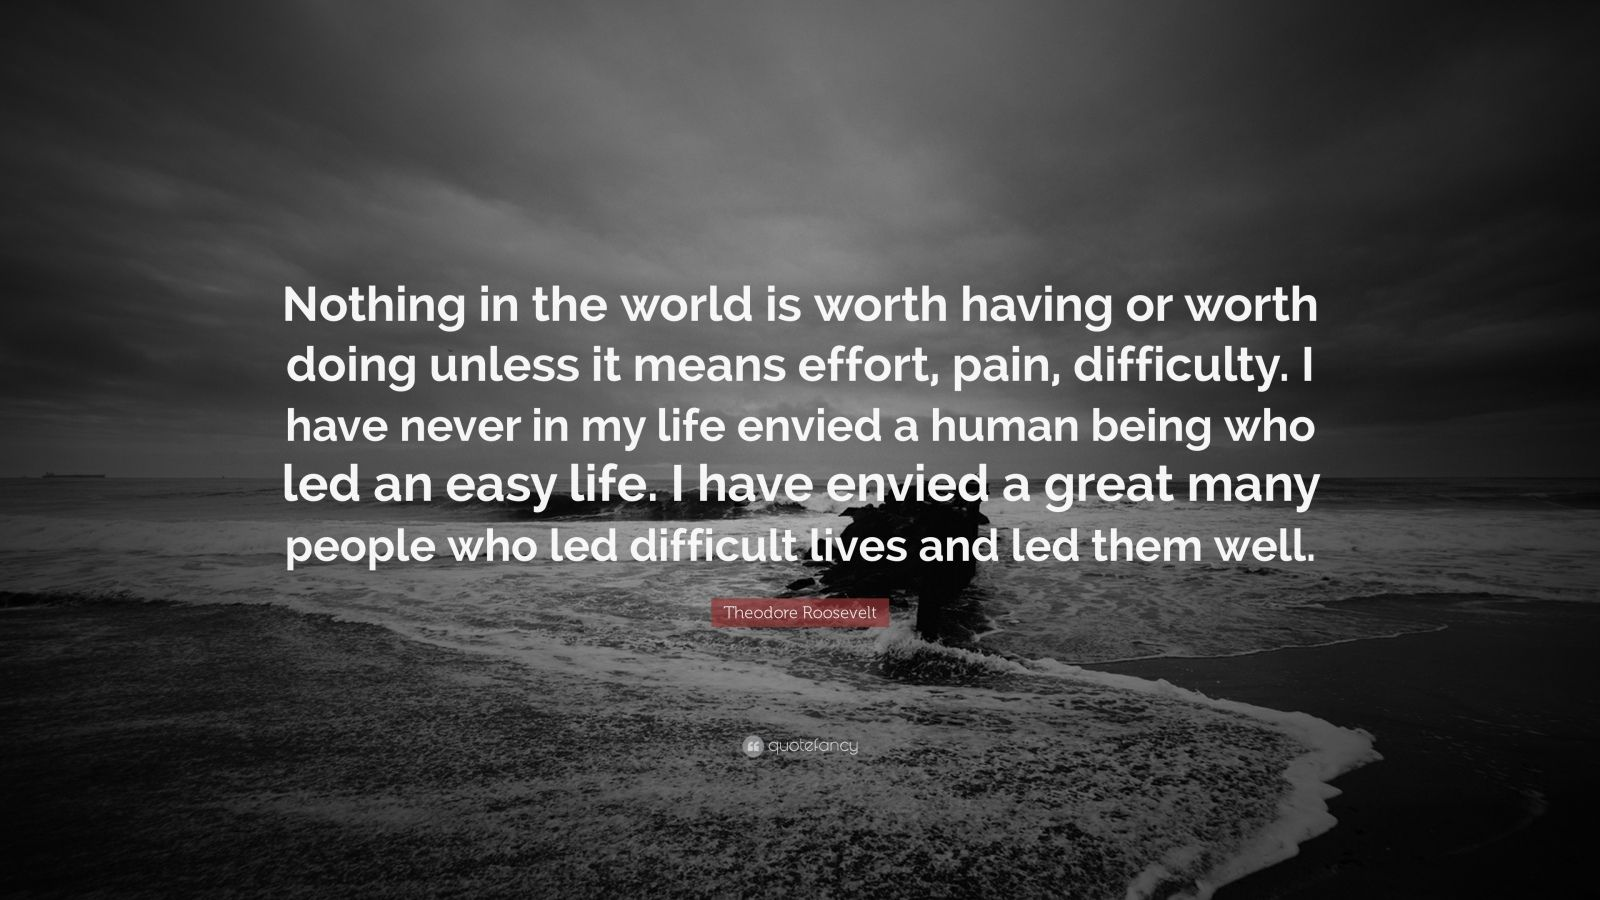 Theodore Roosevelt Wallpaper Quote Theodore Roosevelt Quote Nothing In The World Is Worth